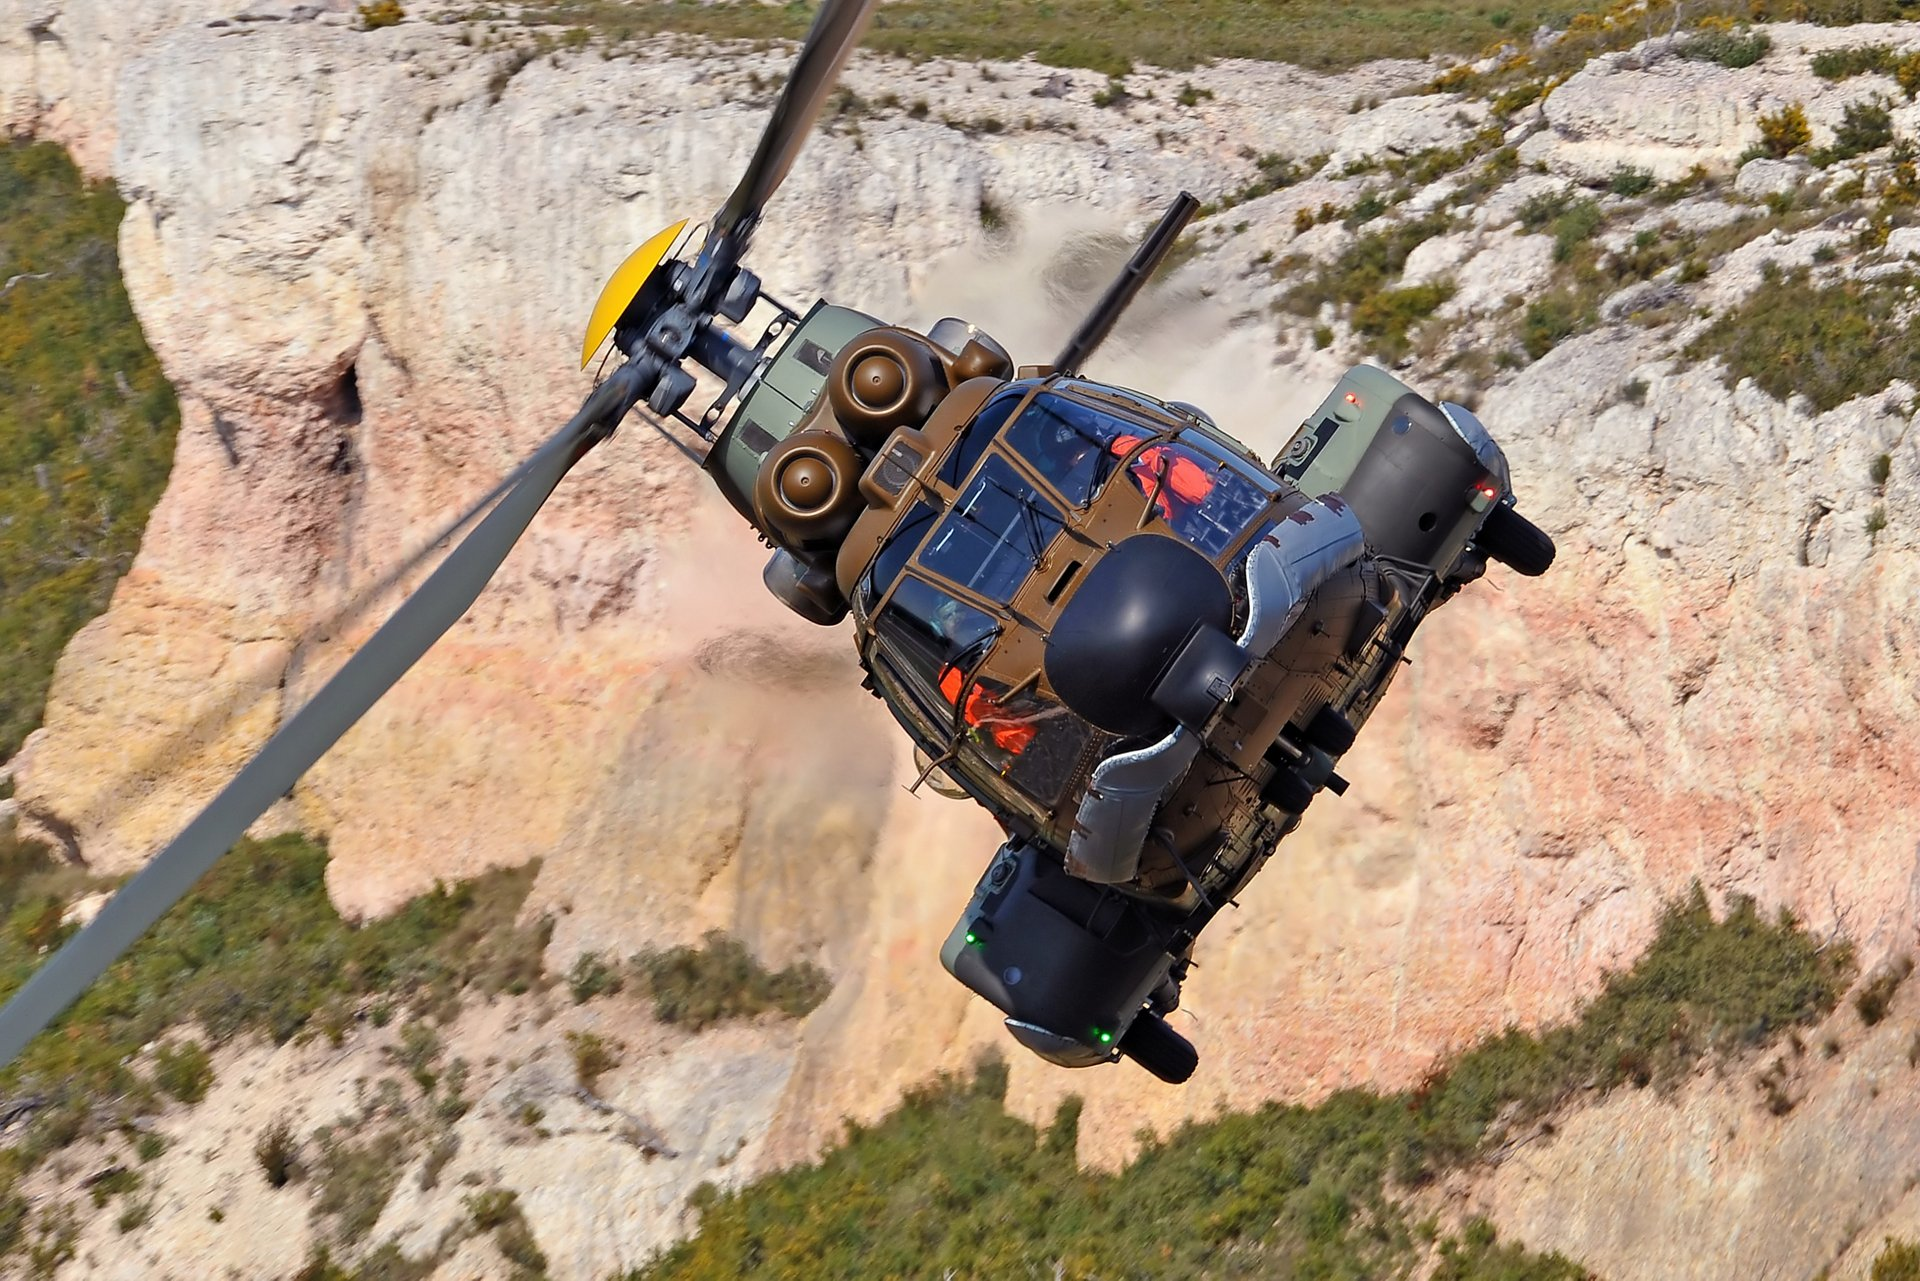 The H215M is a nine-tonne-class rotorcraft from Airbus' Cougar/Super Puma family, combining the product line's mission-proven ruggedness with a full glass cockpit, modern avionics, competitive operating and maintenance costs, and the ability to be armed for ground attack and support missions.